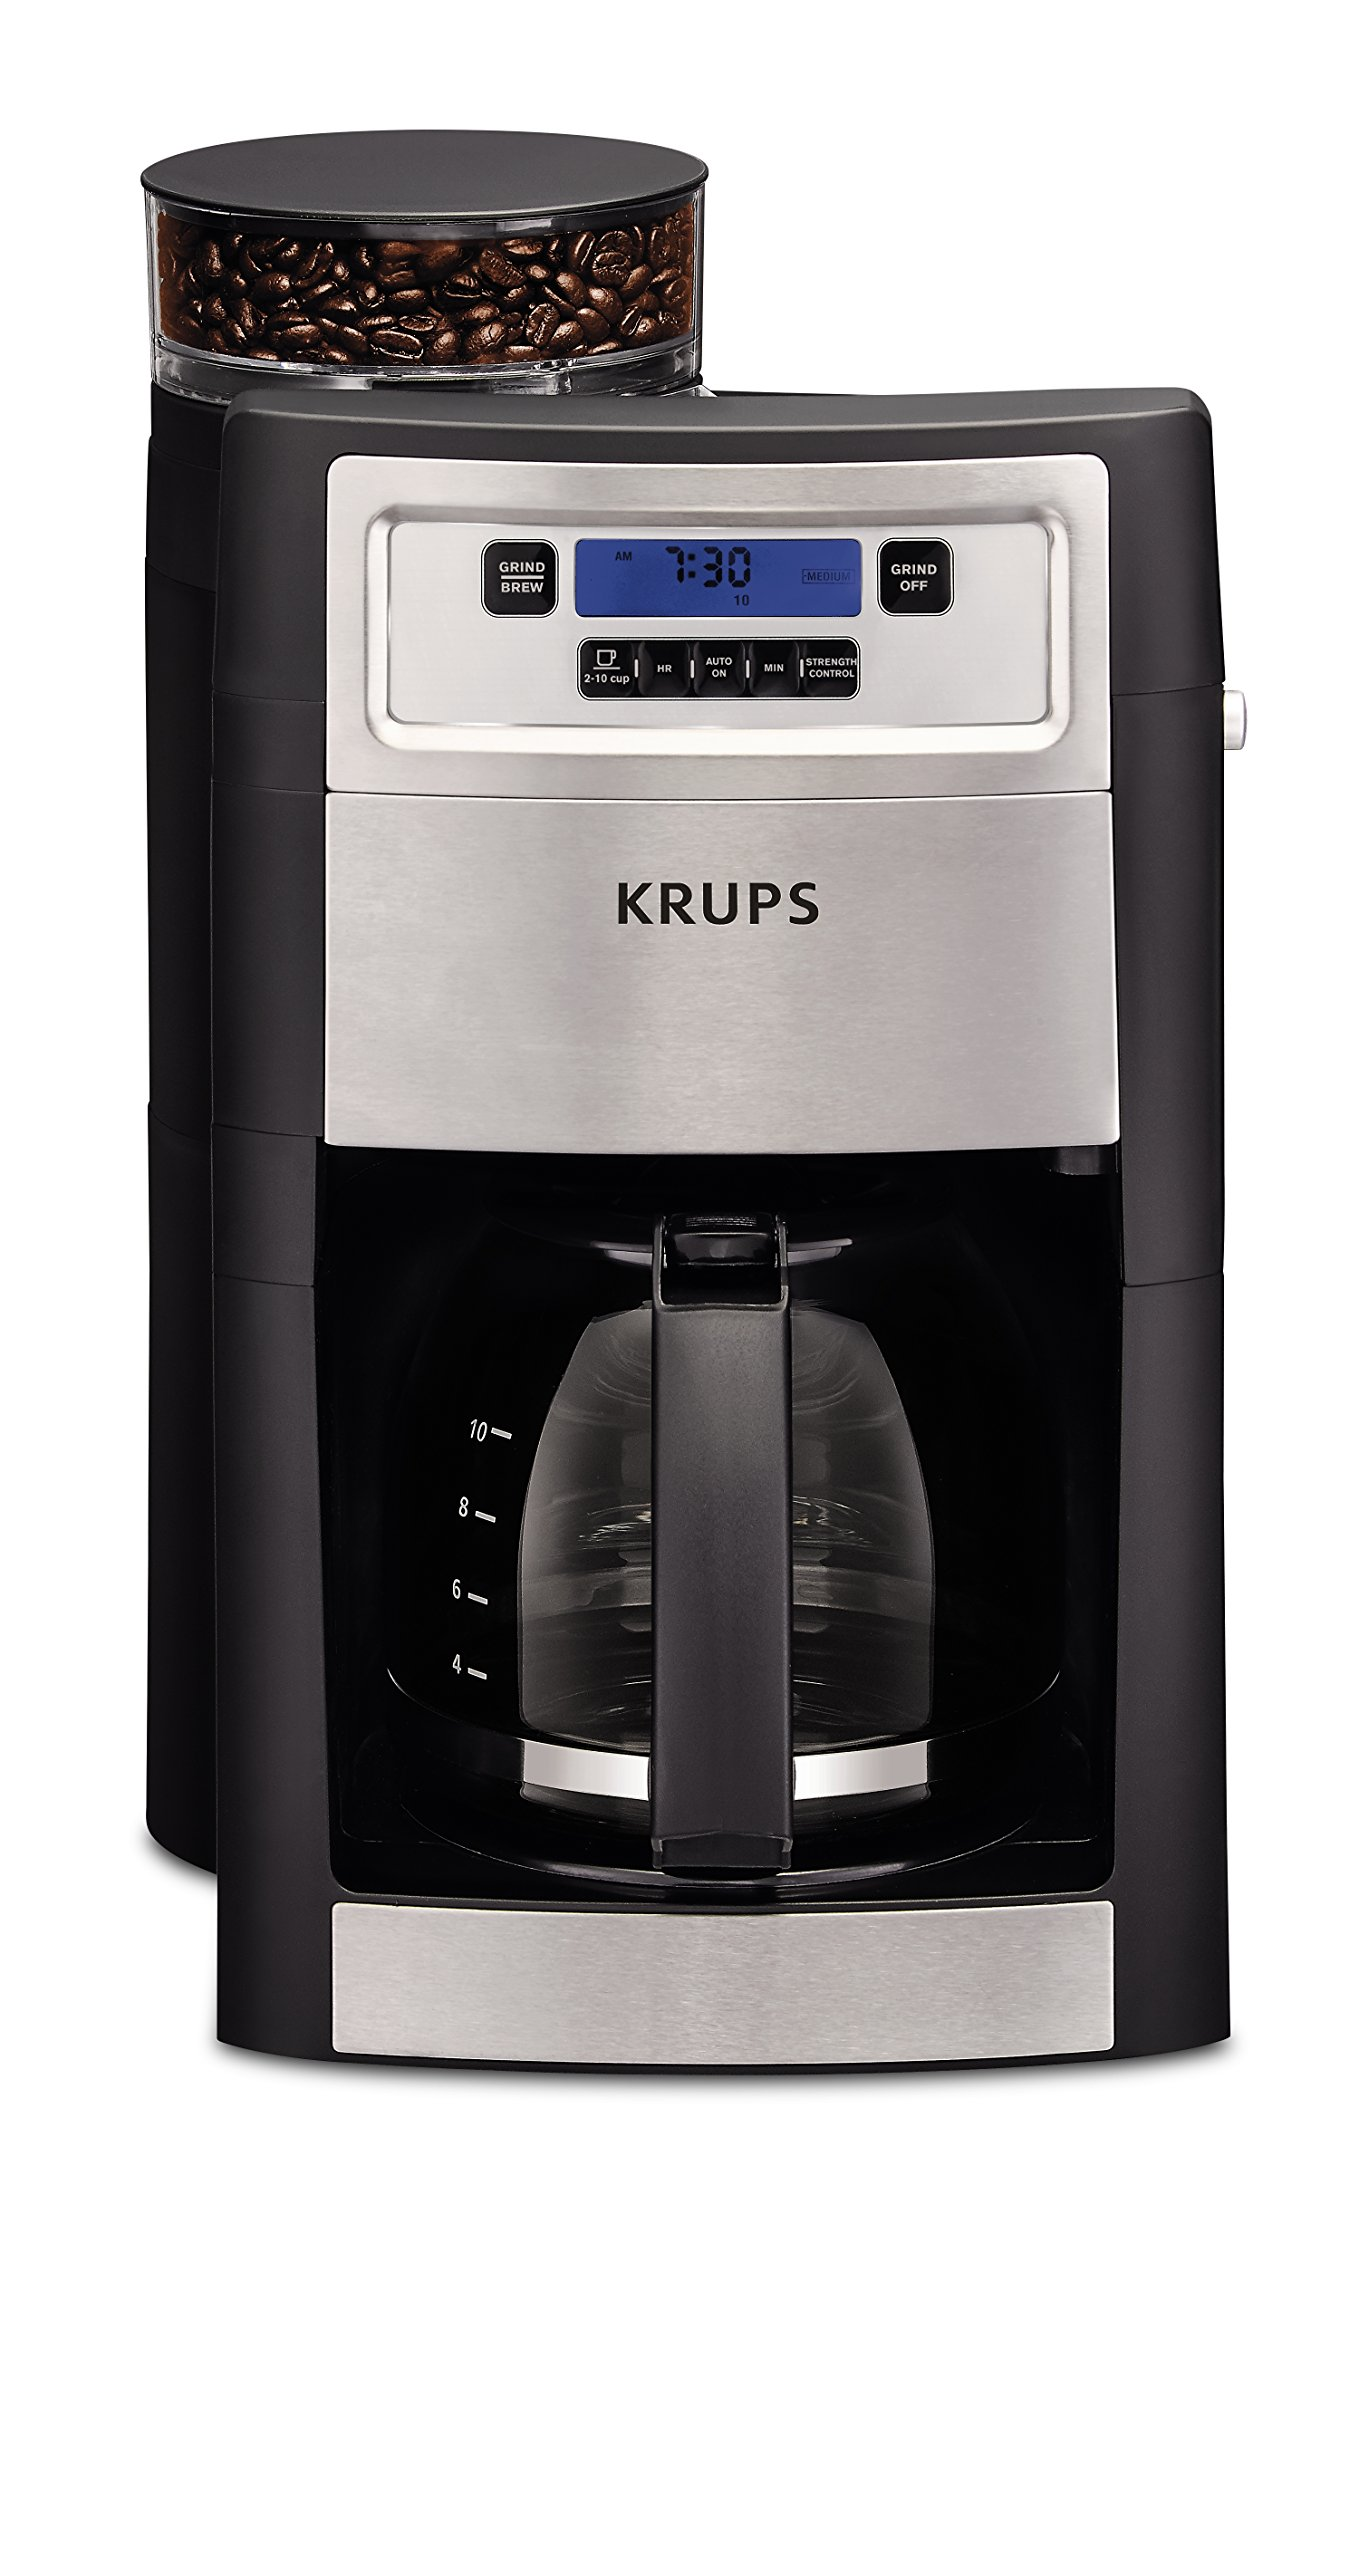 KRUPS KM785D50 Automatic Programmable Grind and Brew Coffee Maker with integrated Burr Grinder and Keep Warm, Black by KRUPS